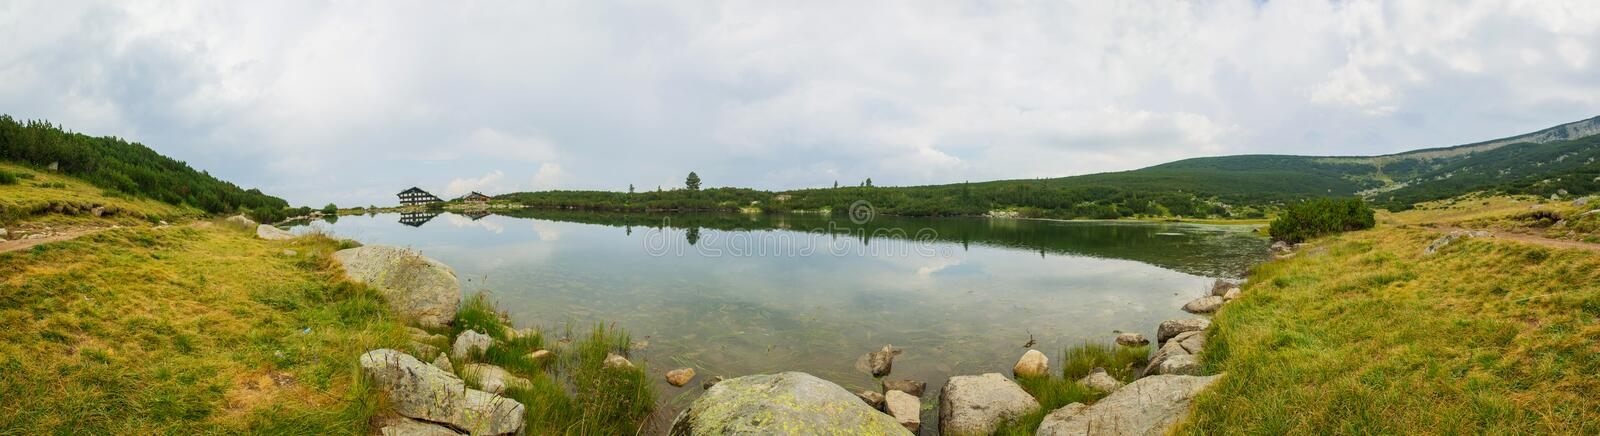 Bezbog Lake Panorama royalty free stock image